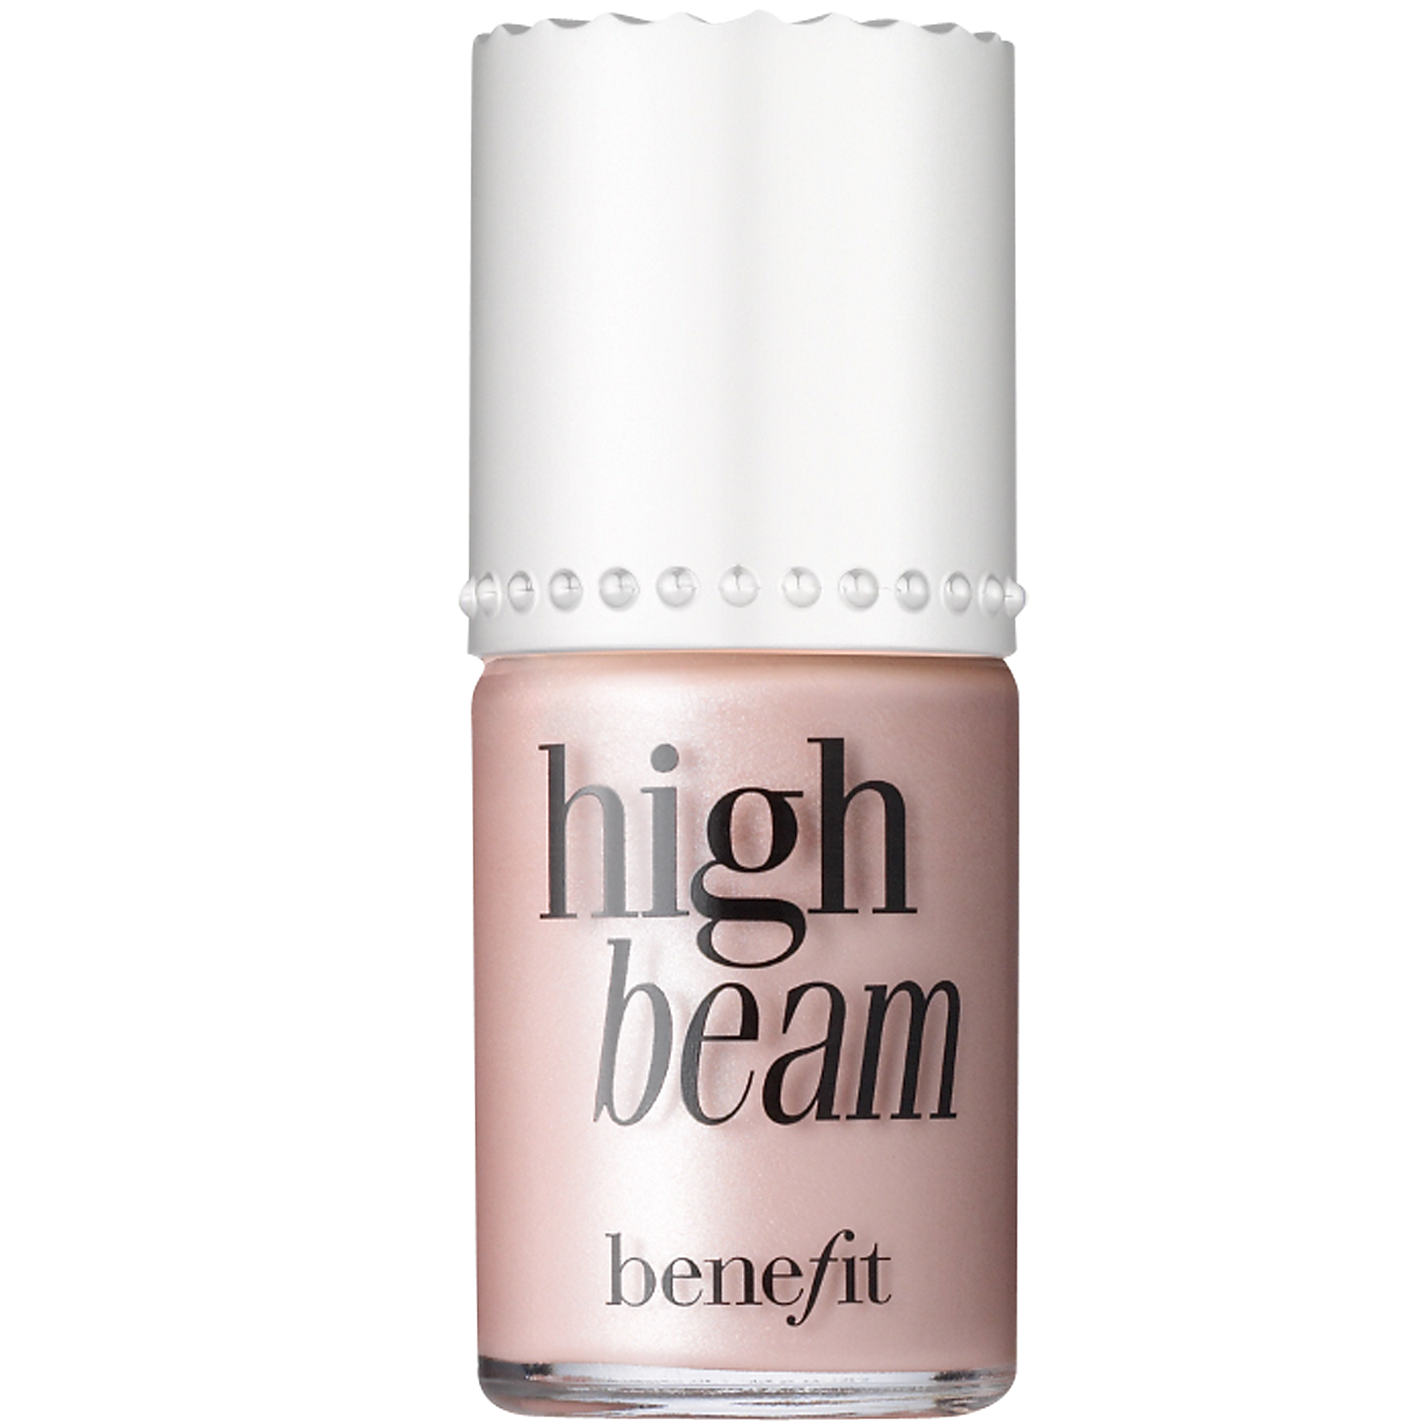 Image result for benefit high beam